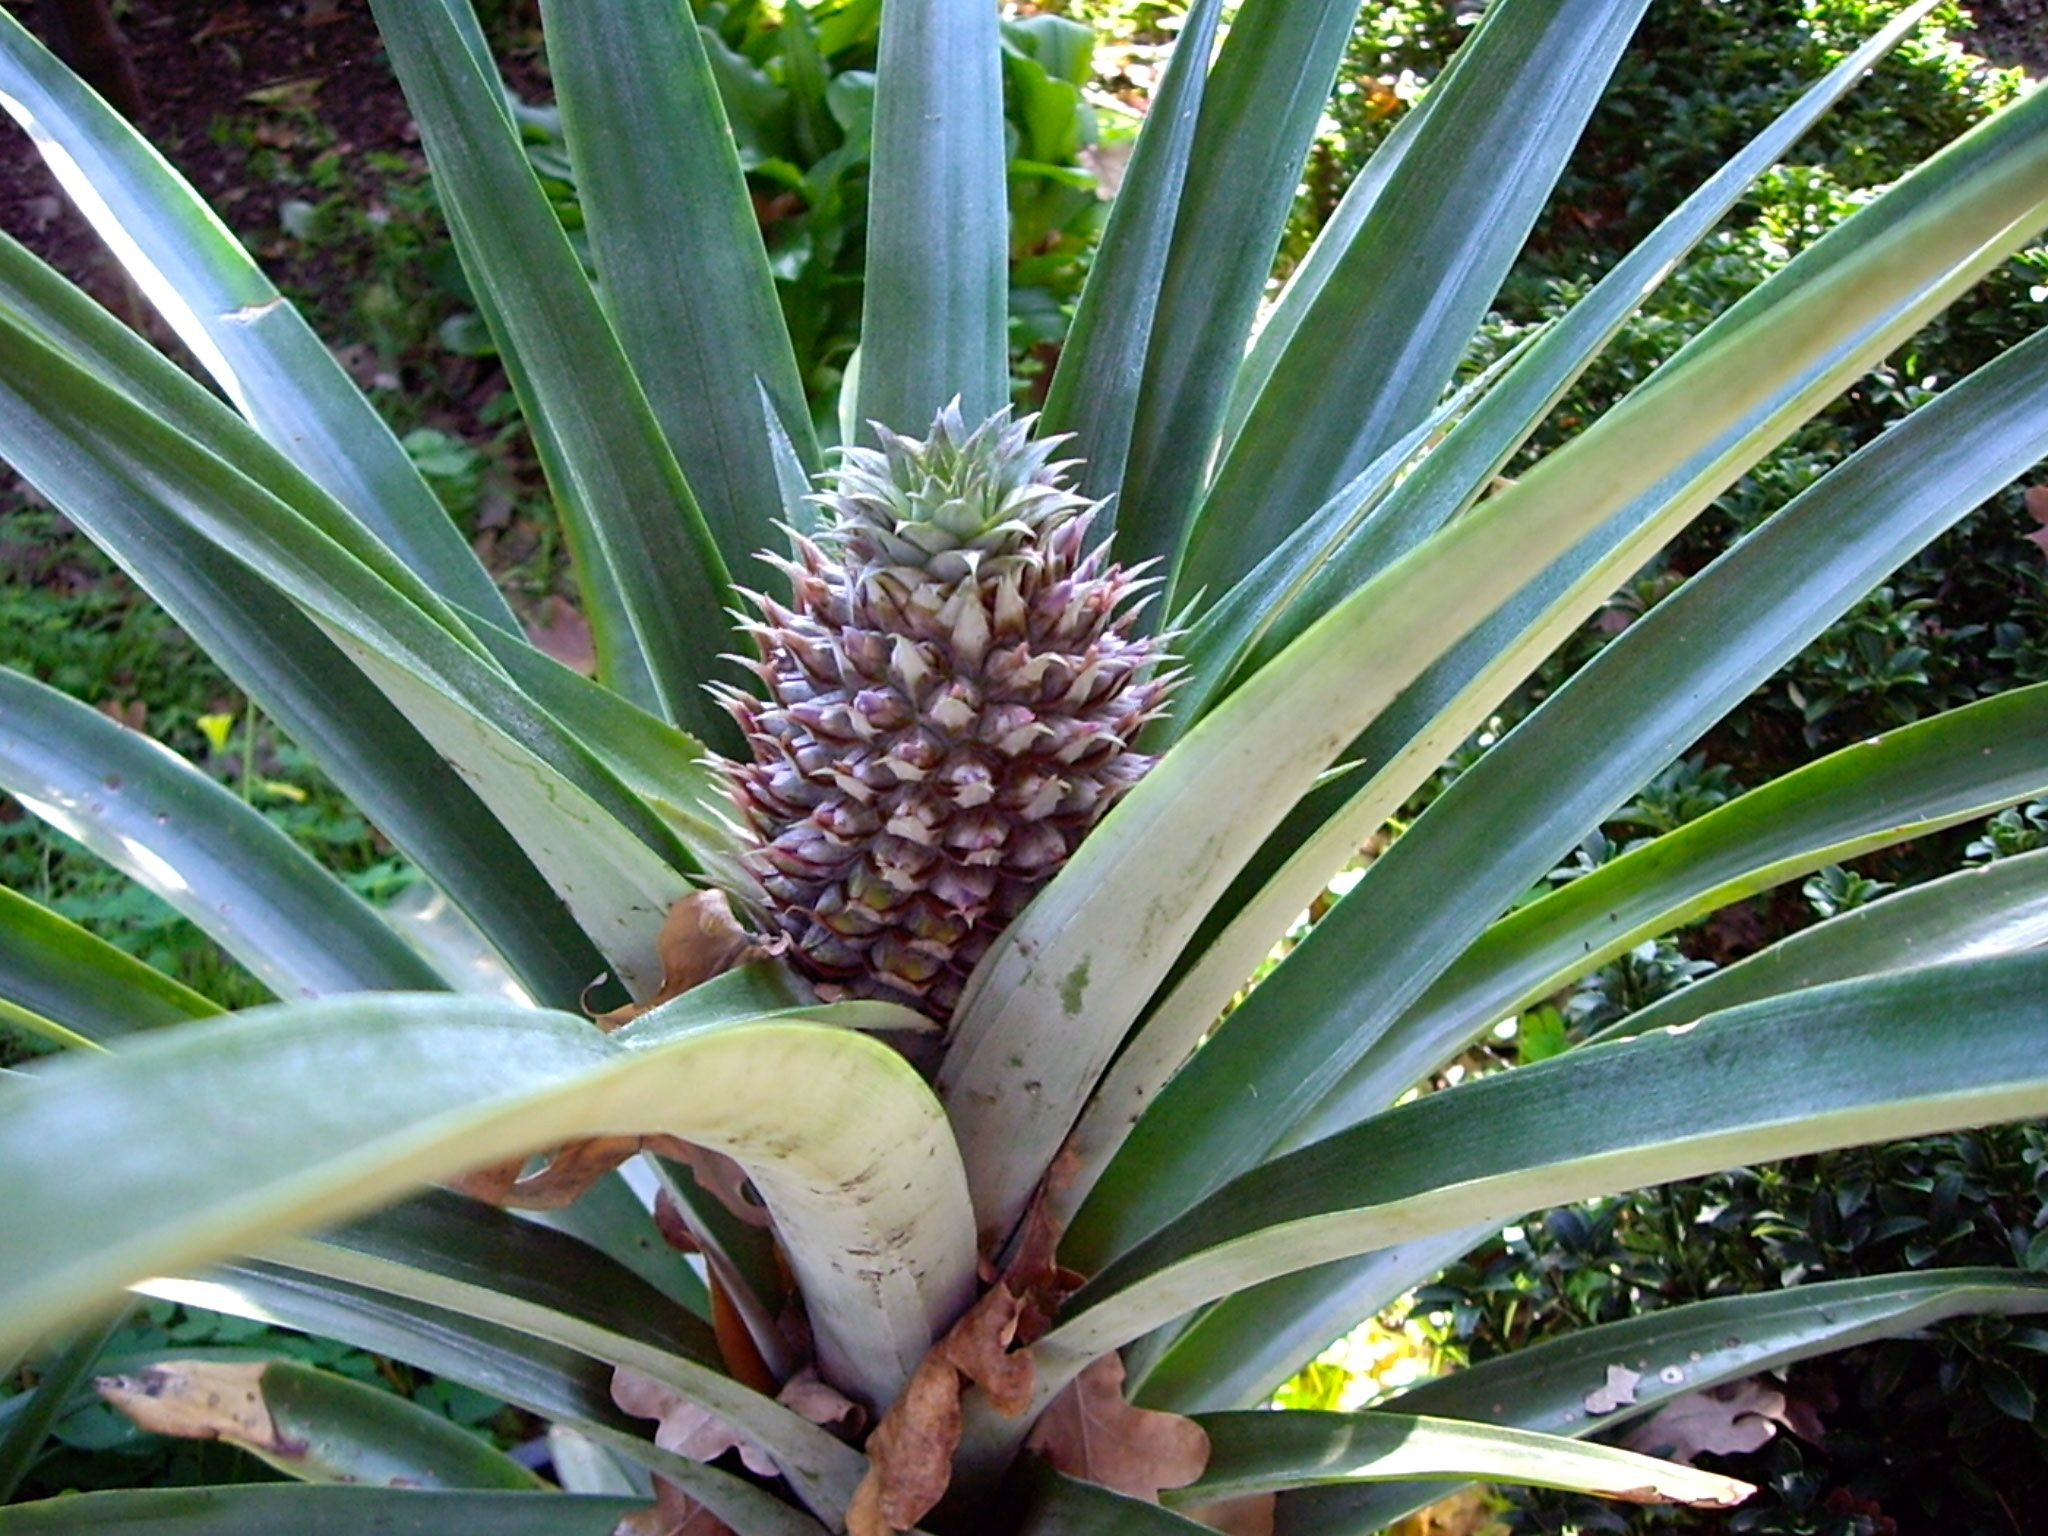 A Pineapple Growing In Adelaide South Australia It May Not Survive The Winter Growing Pineapple Pineapple Growing